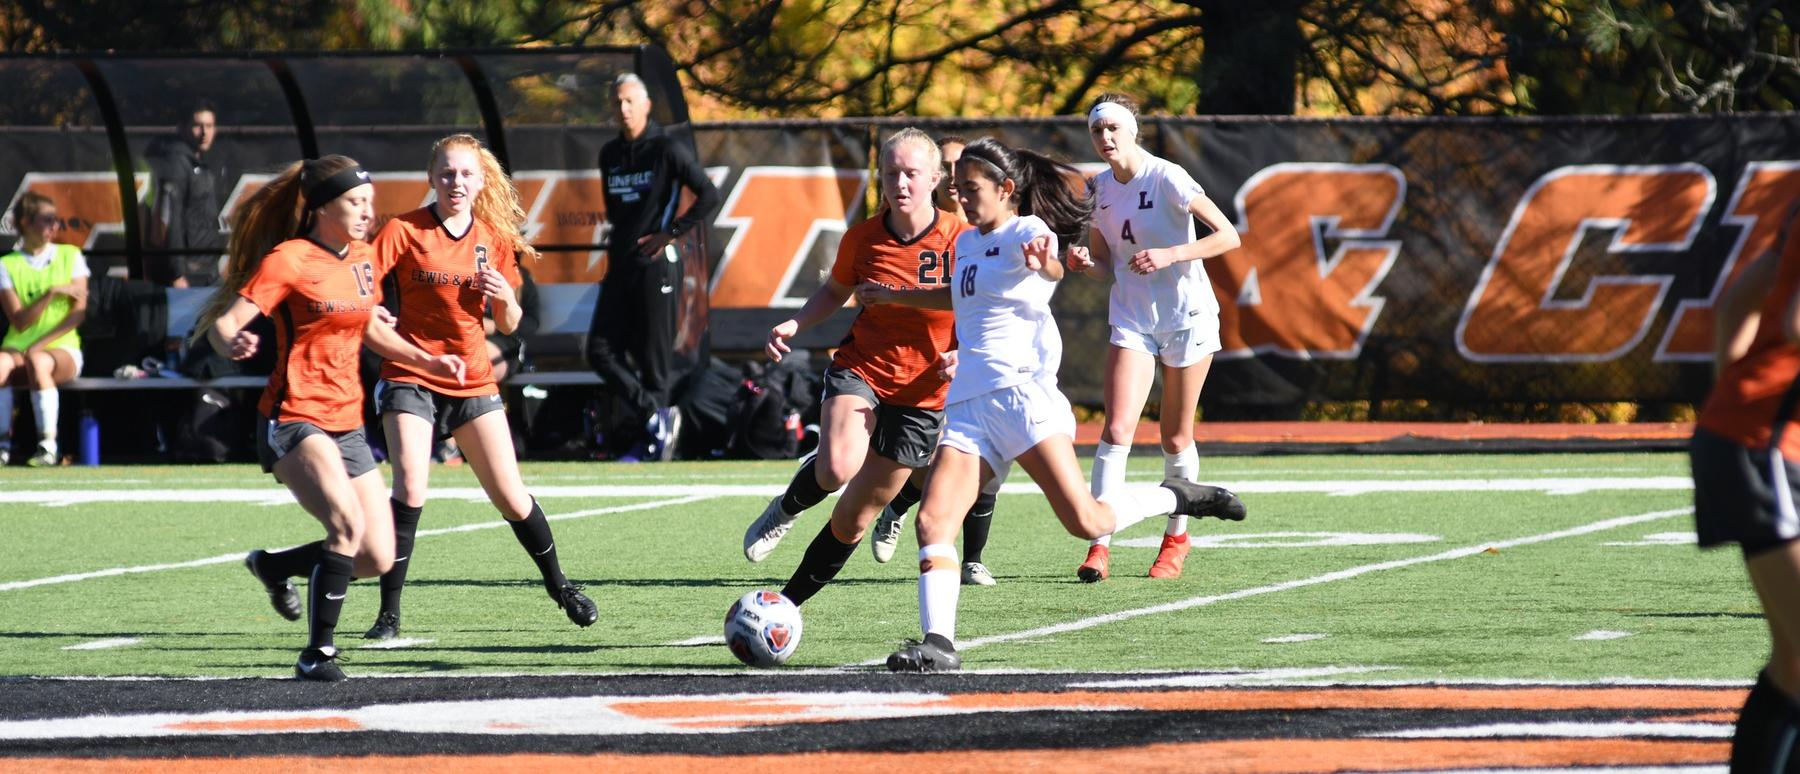 Pioneers bring home big win with 4-0 shutout of Wildcats